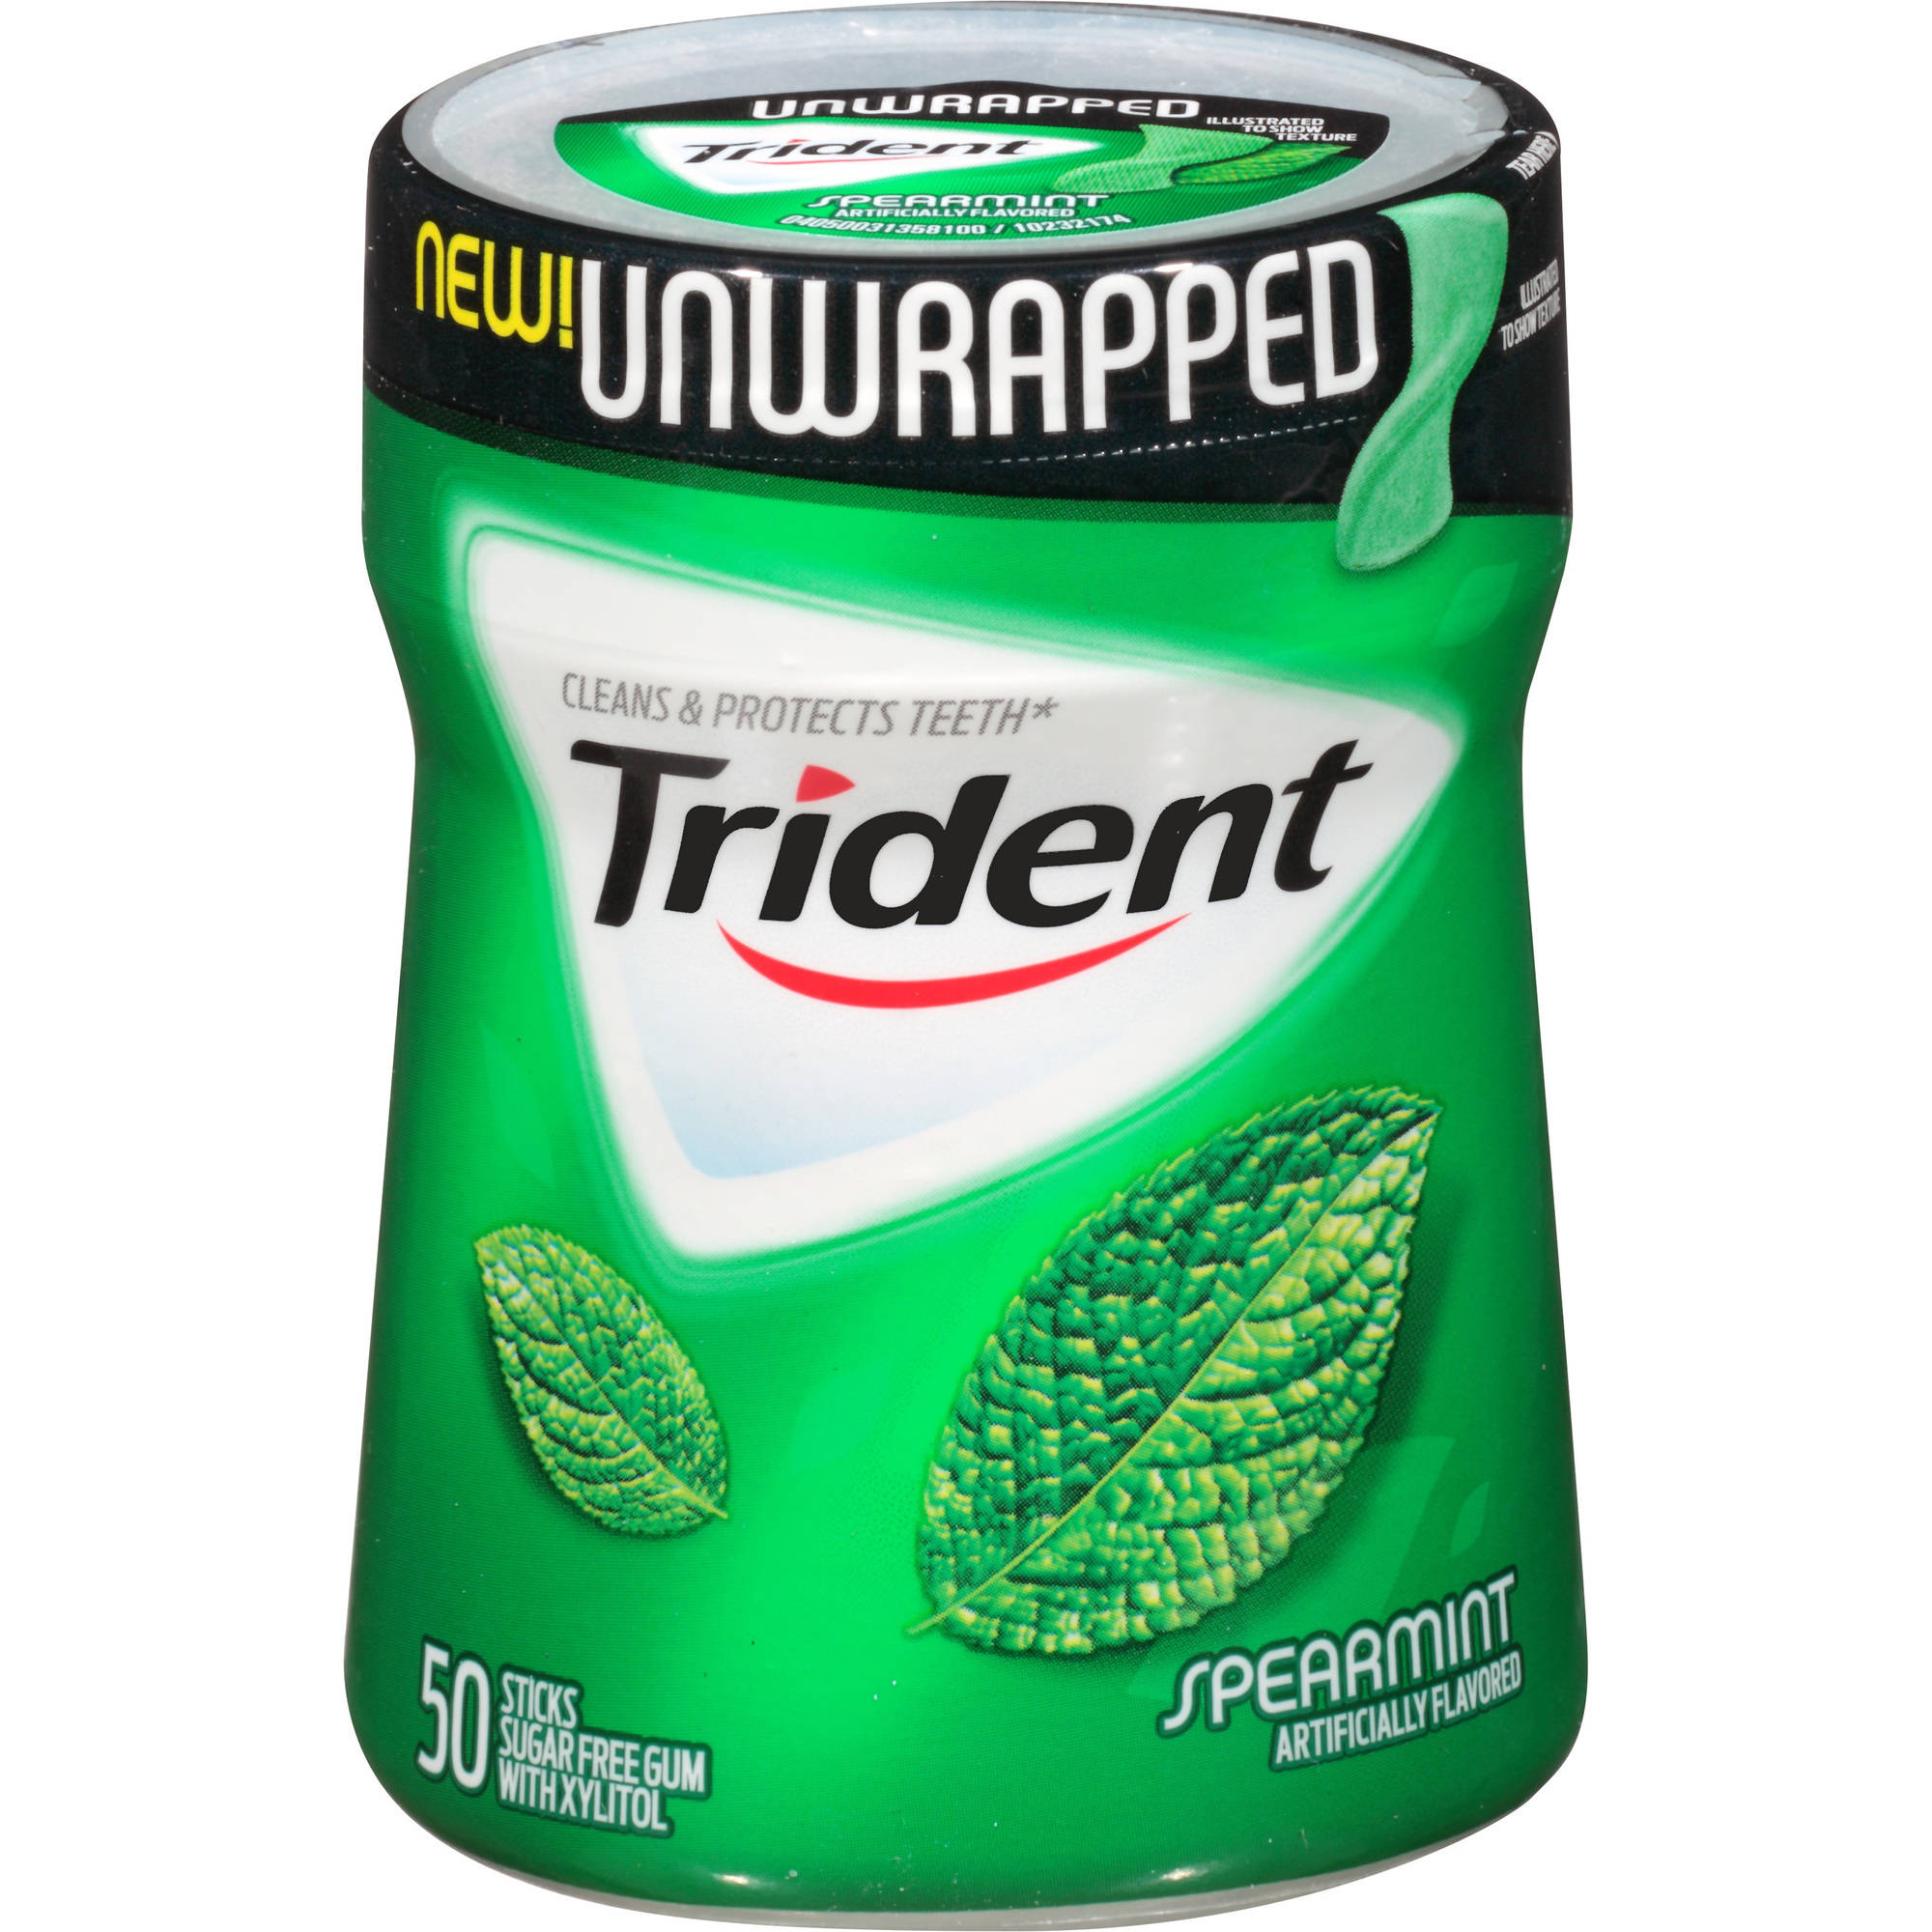 Trident Unwrapped Spearmint Sugar Free Gum with Xylitol, 50 pc